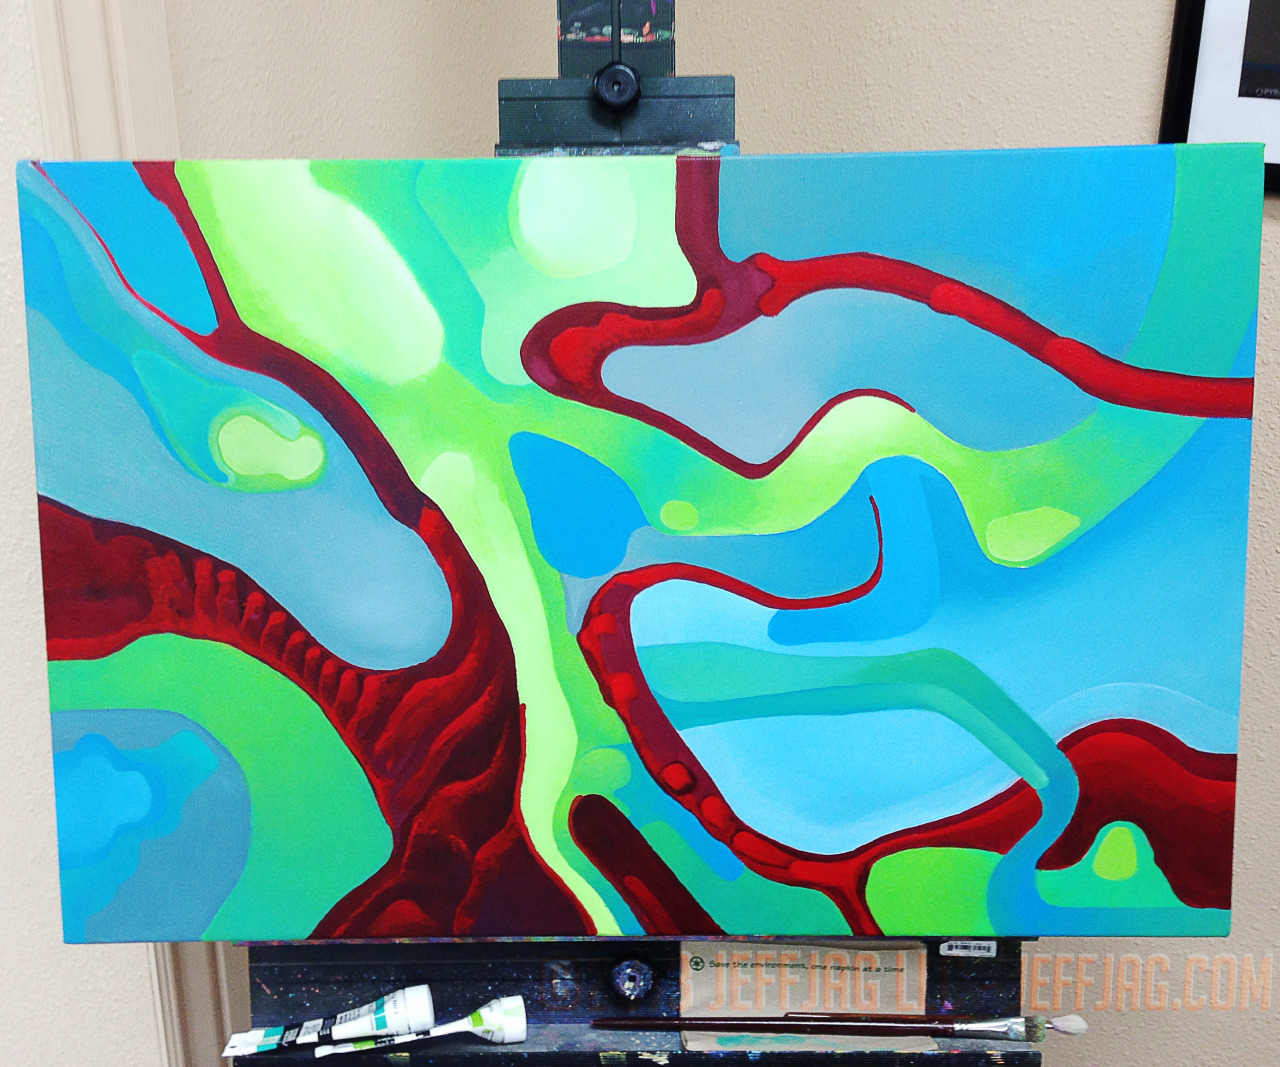 "©2013 jeffjag llc, Live, New, Acrylic Painting by JeffJag. RGB. 20""x30"" progress 30. #HOTMAY"